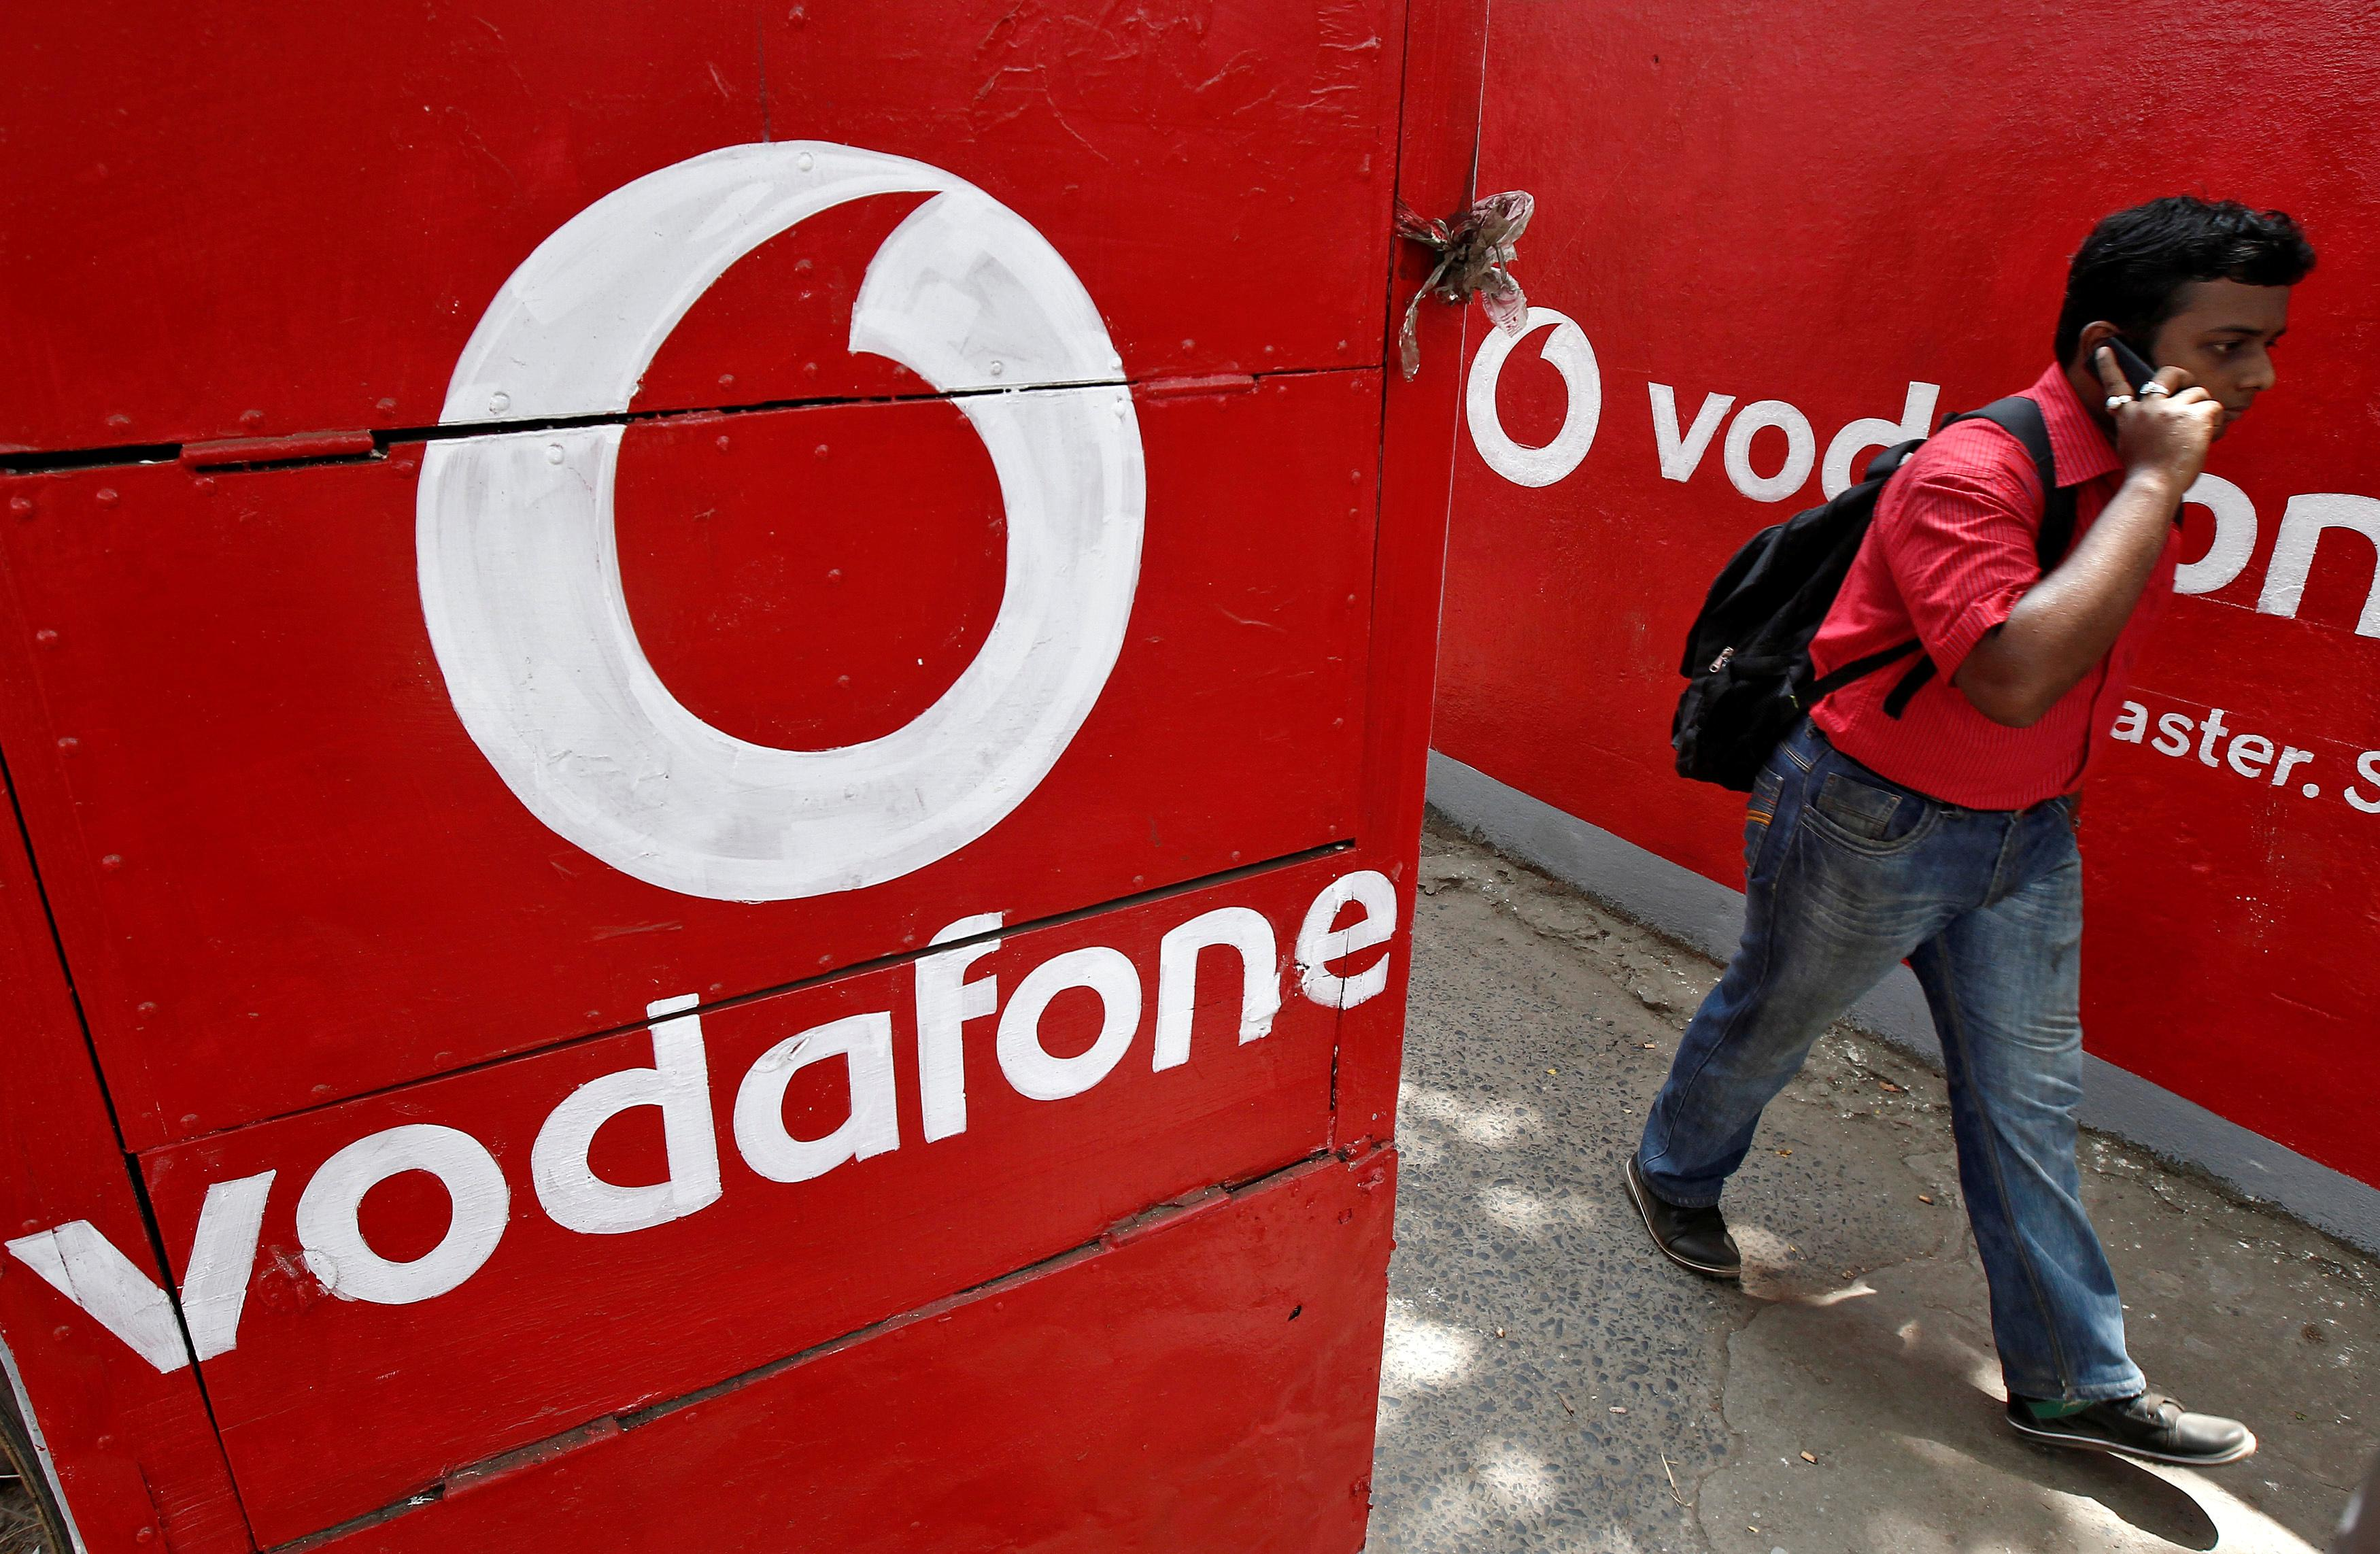 Situation critical: Vodafone's future in India in doubt after court...